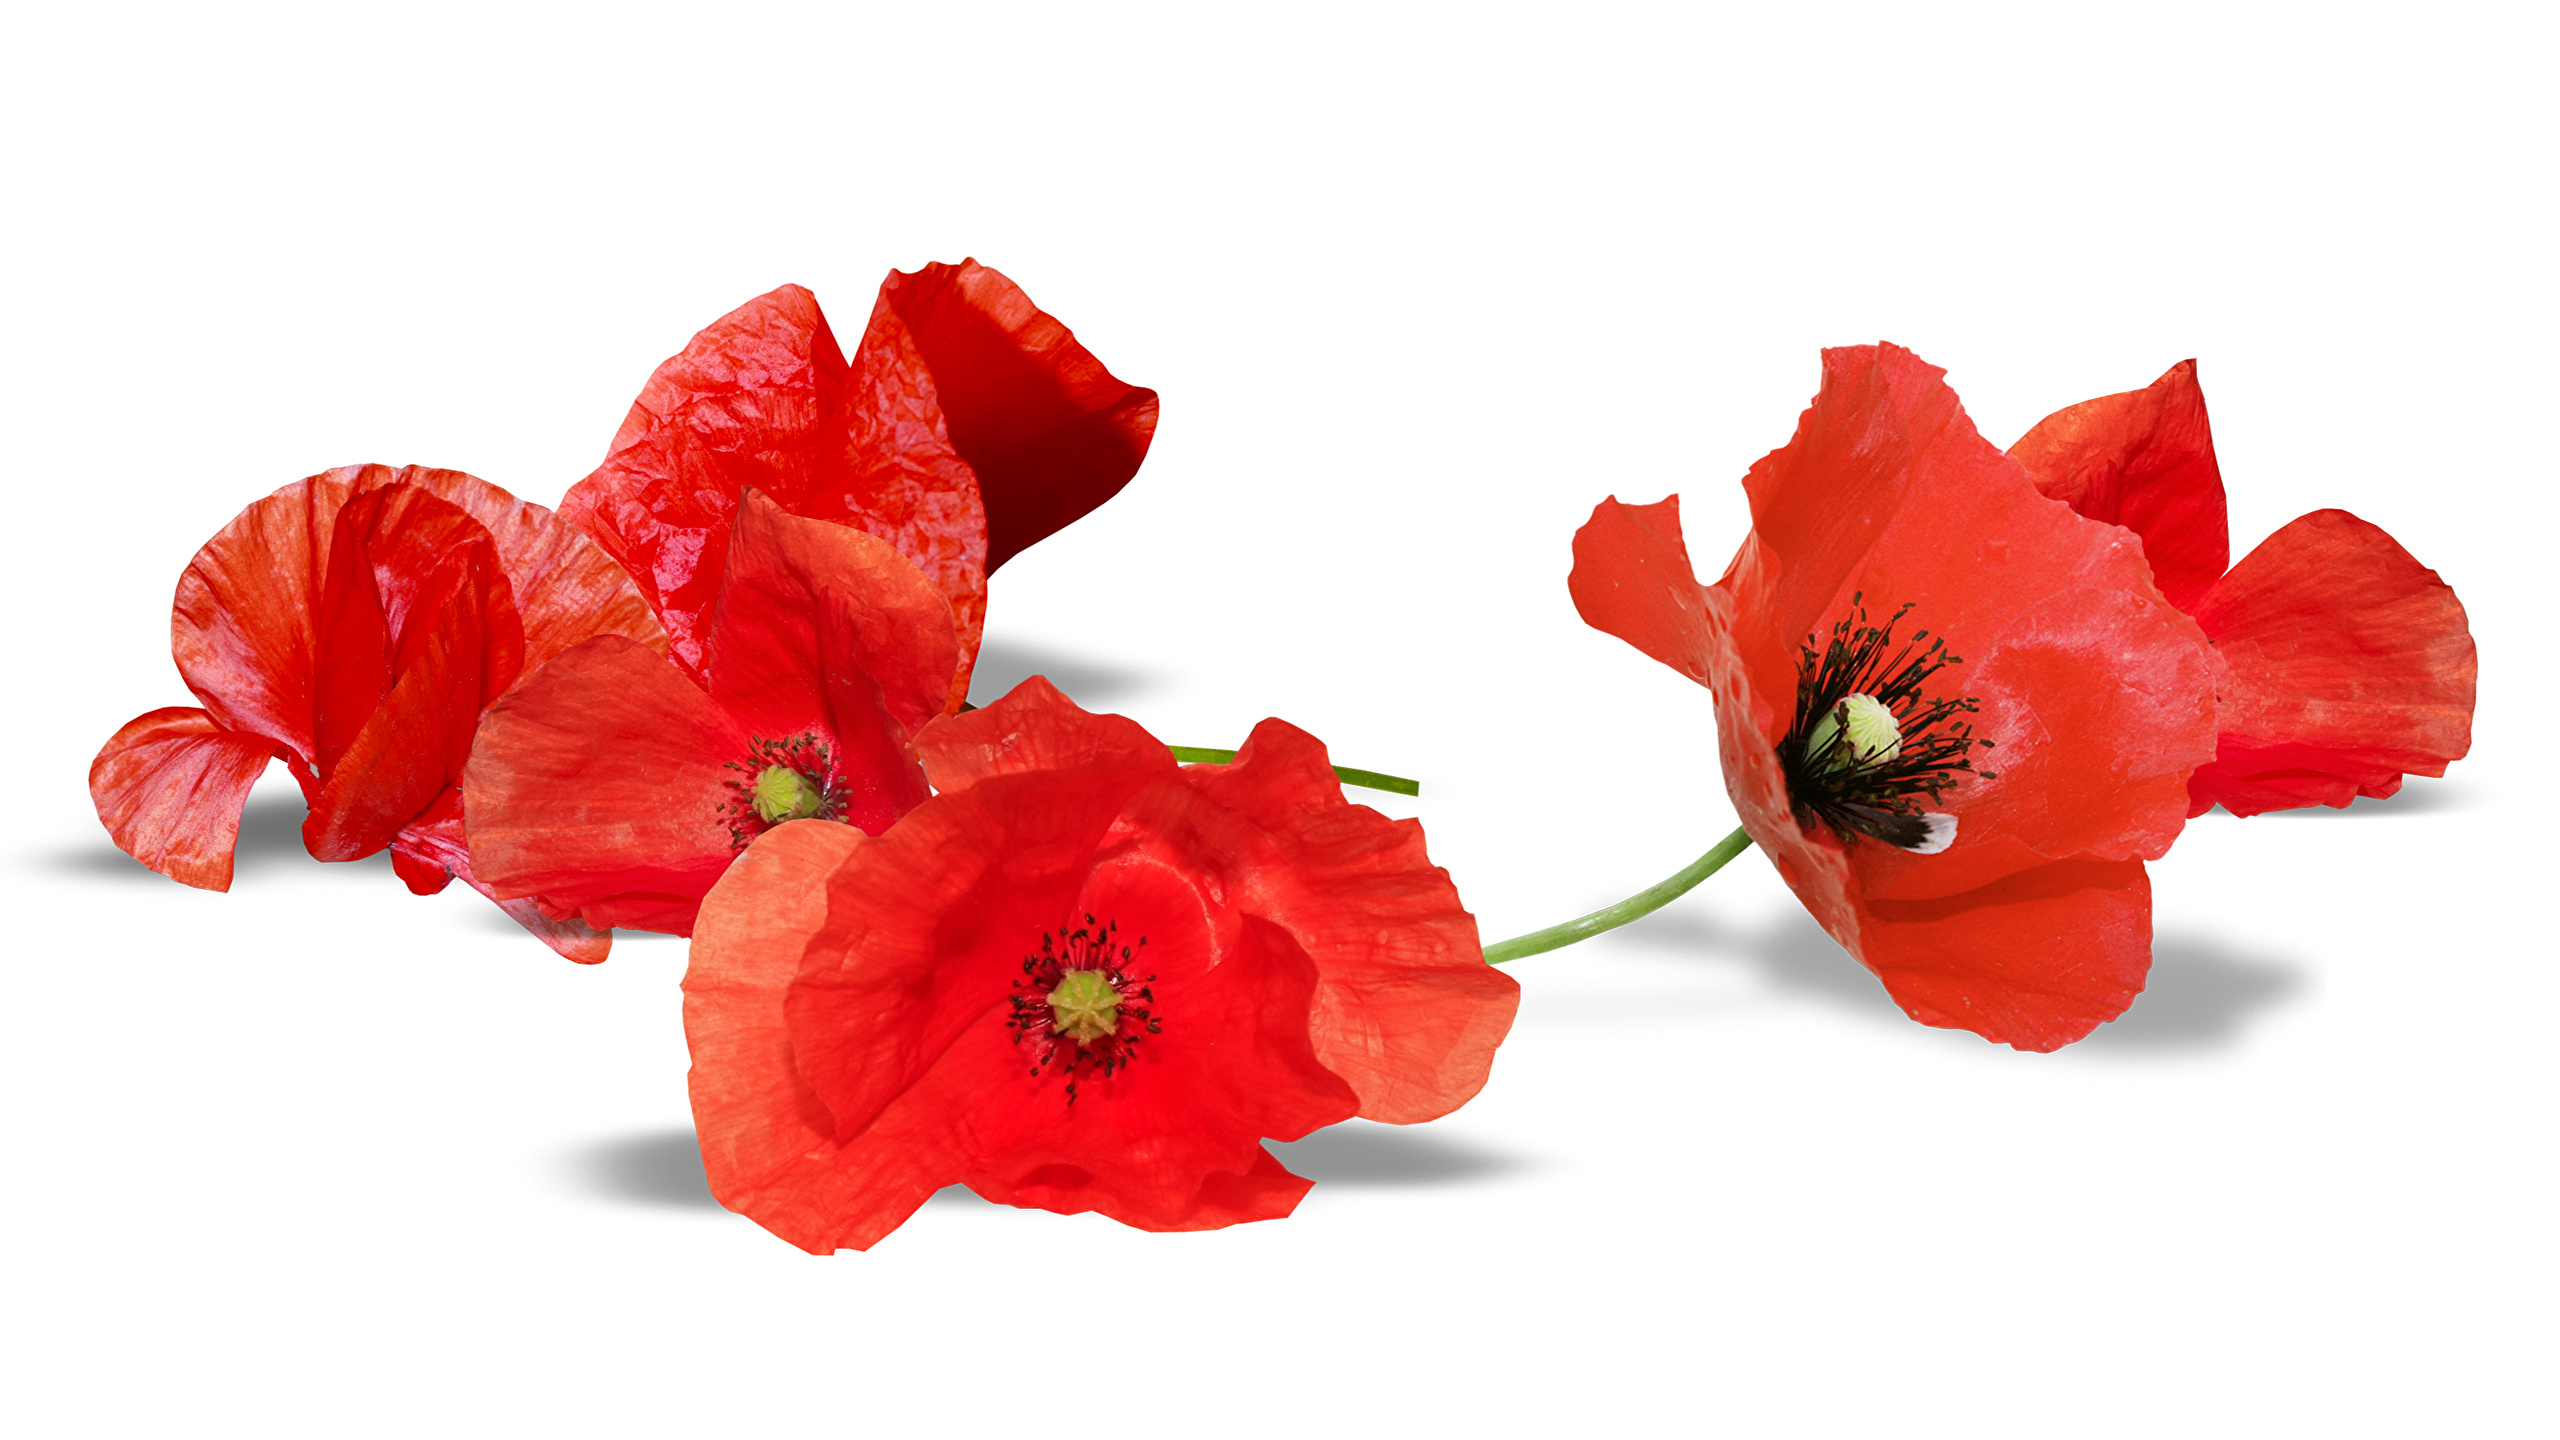 Pictures Red Flowers Papaver Closeup White Background 2560x1440